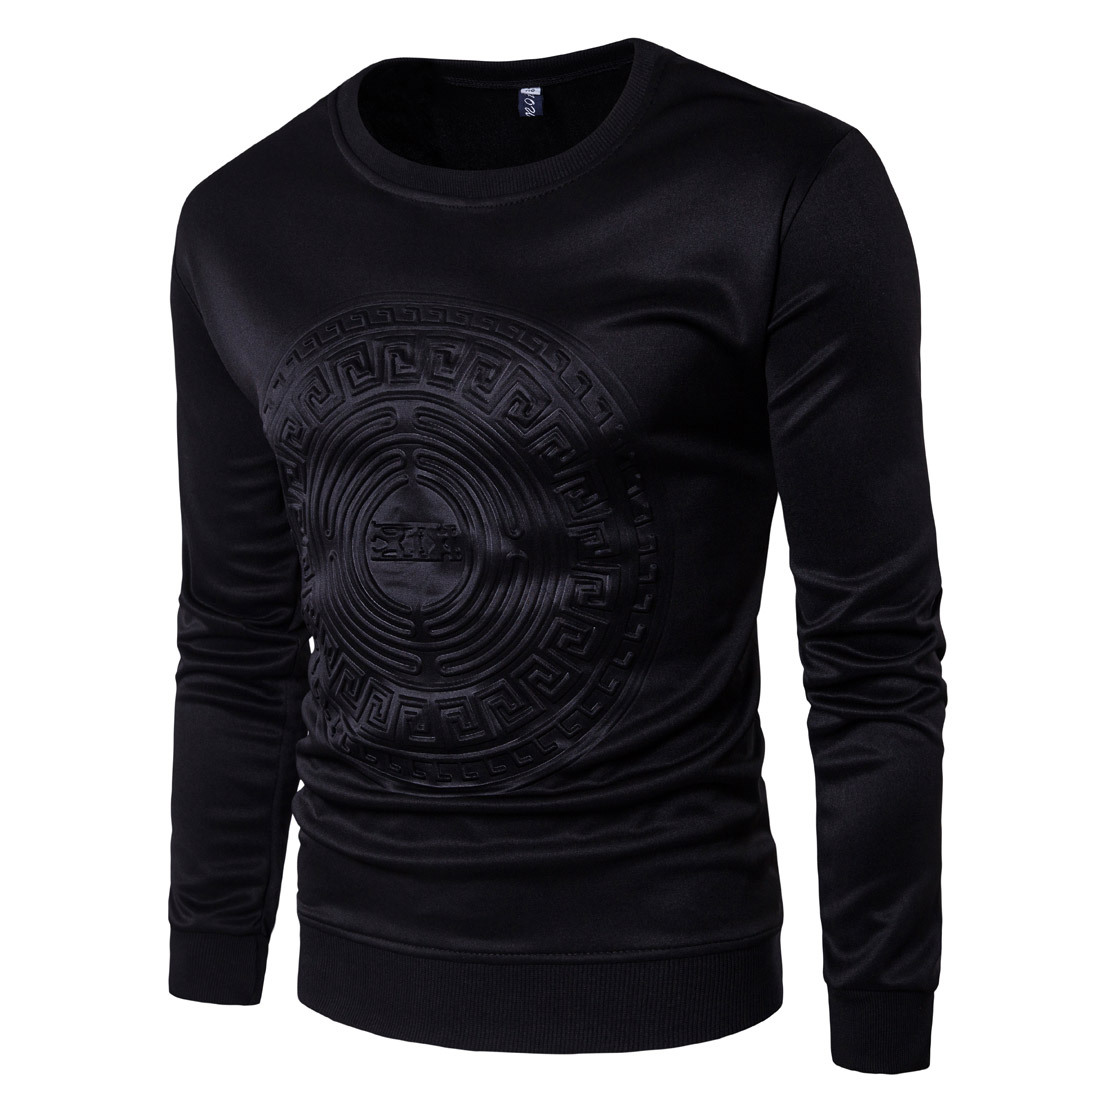 European Style Trend Personalized Men's Embossed Sweaters Set Of Space Overseas Fashion Long-sleeved Shirts XS-3XL